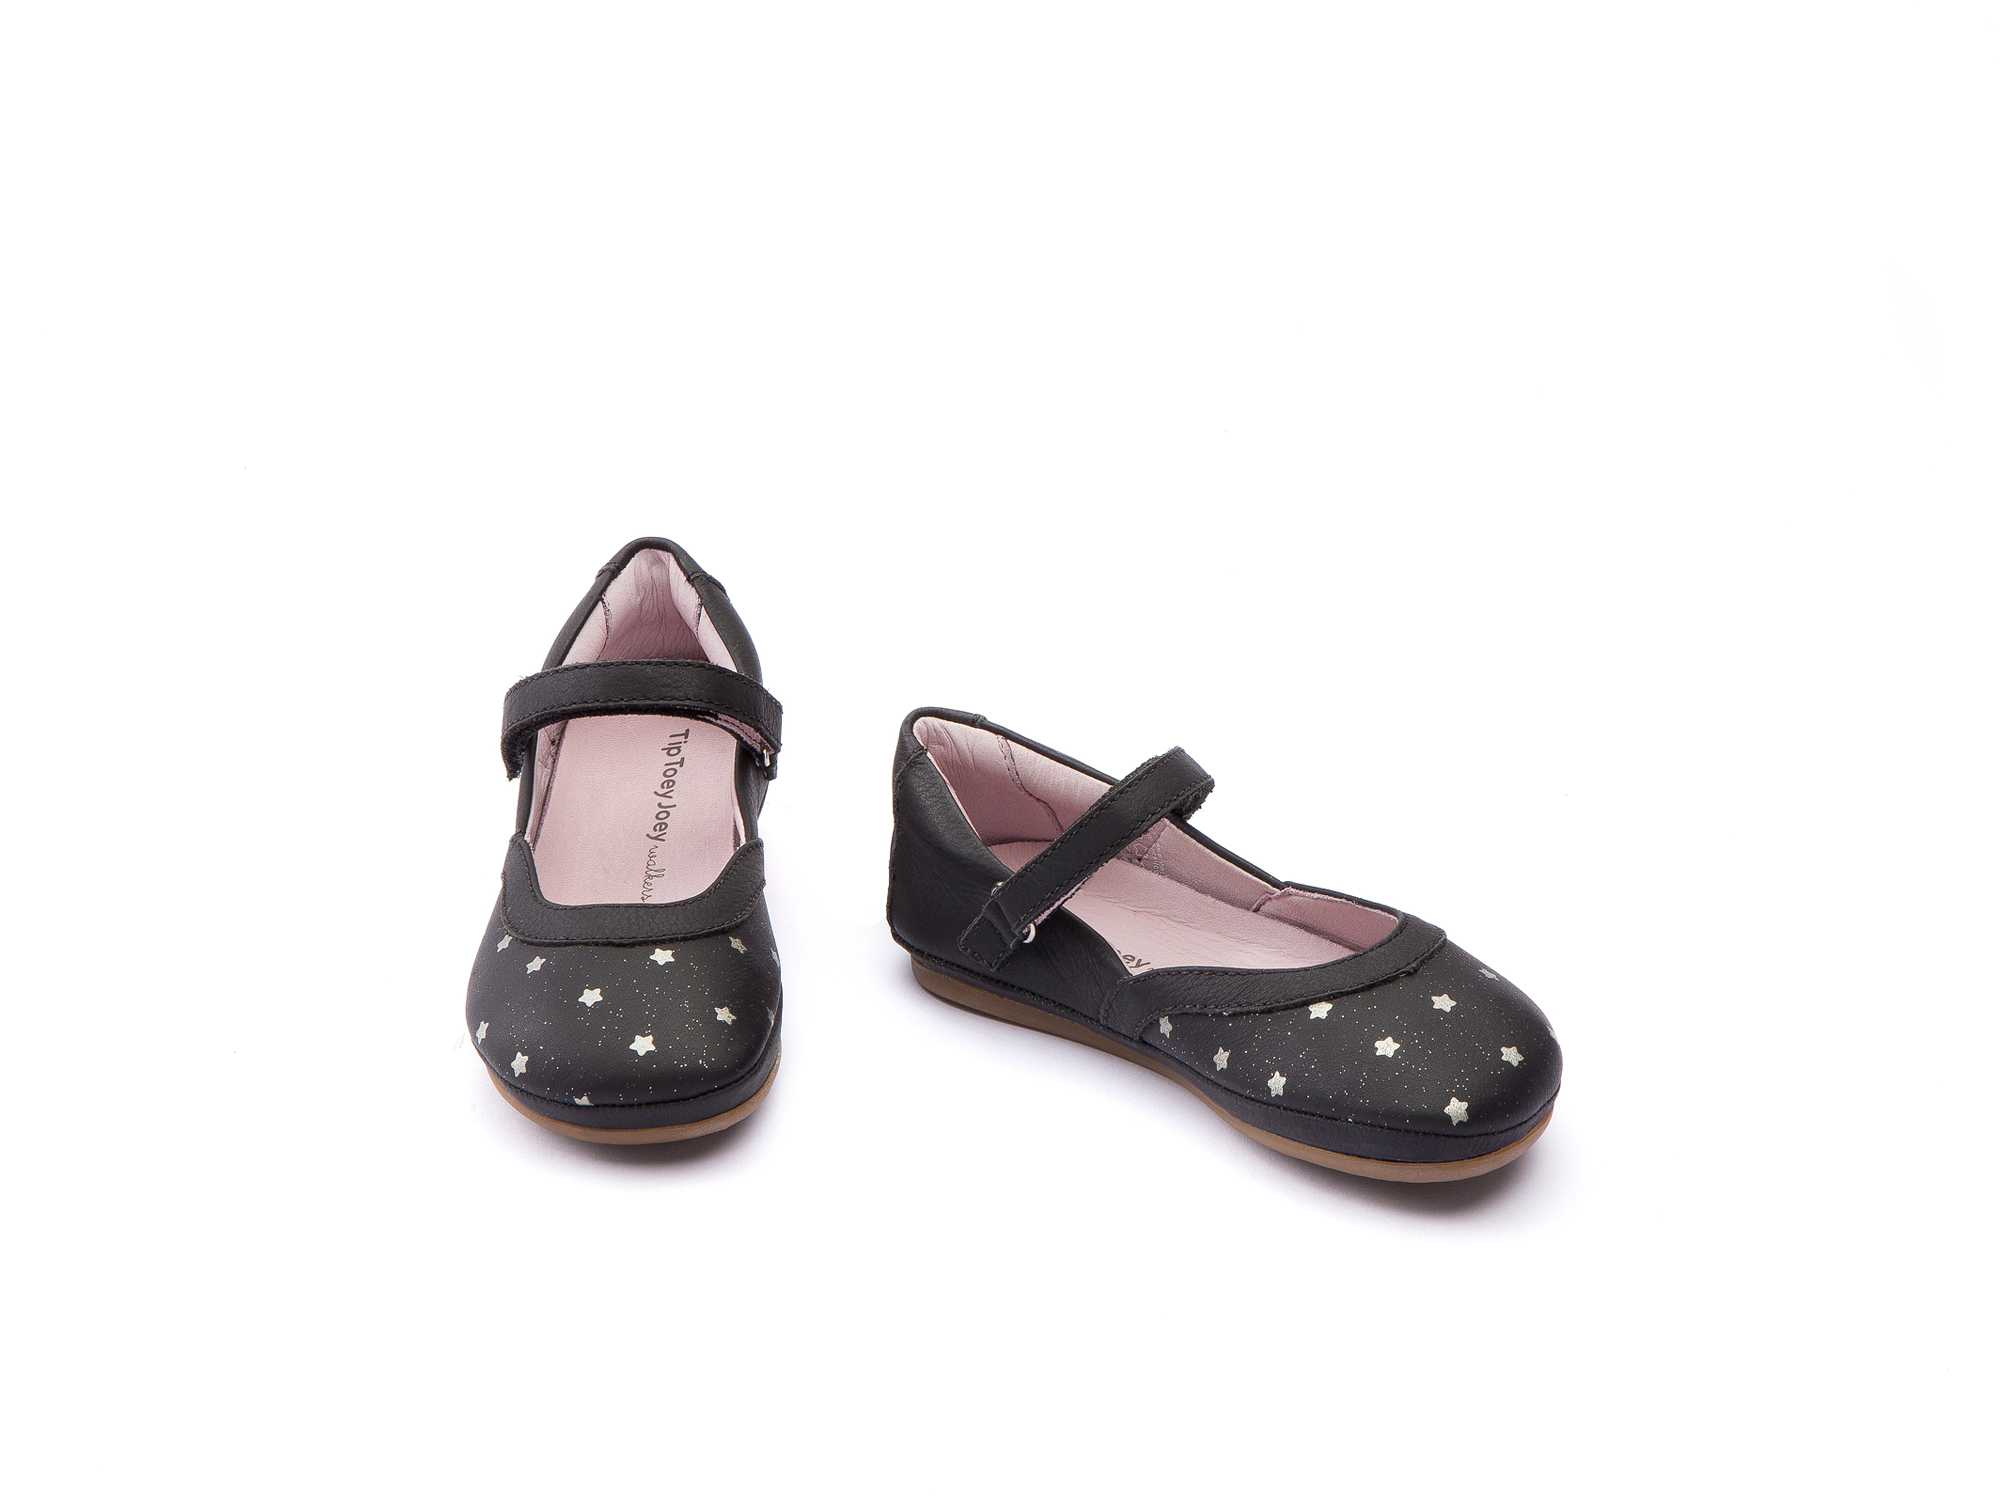 Boneca Little Cisne Black Stars/ Black Toddler 2 à 4 anos - 1